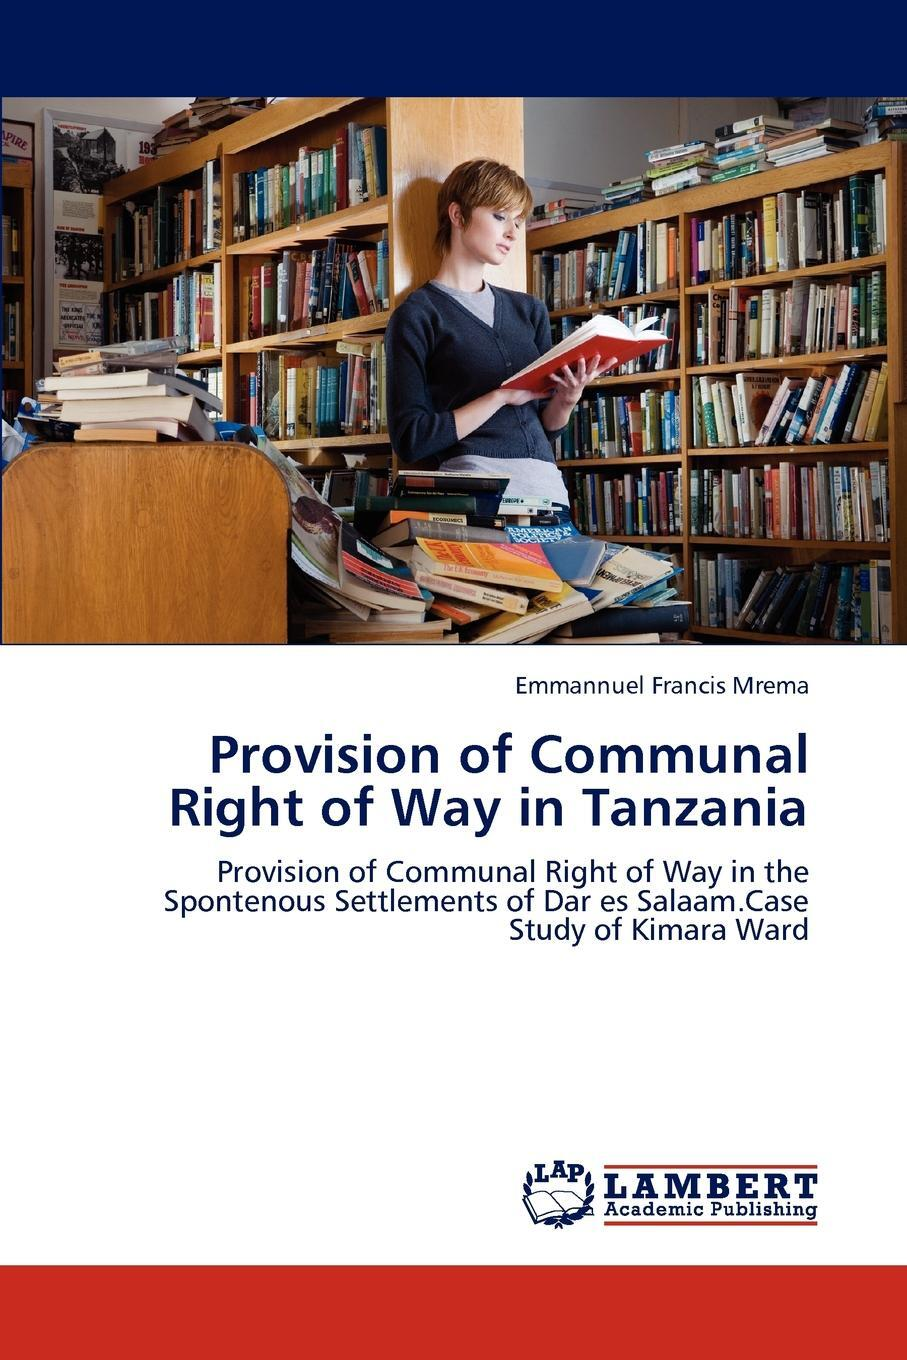 Provision of Communal Right of Way in Tanzania. Emmannuel Francis Mrema